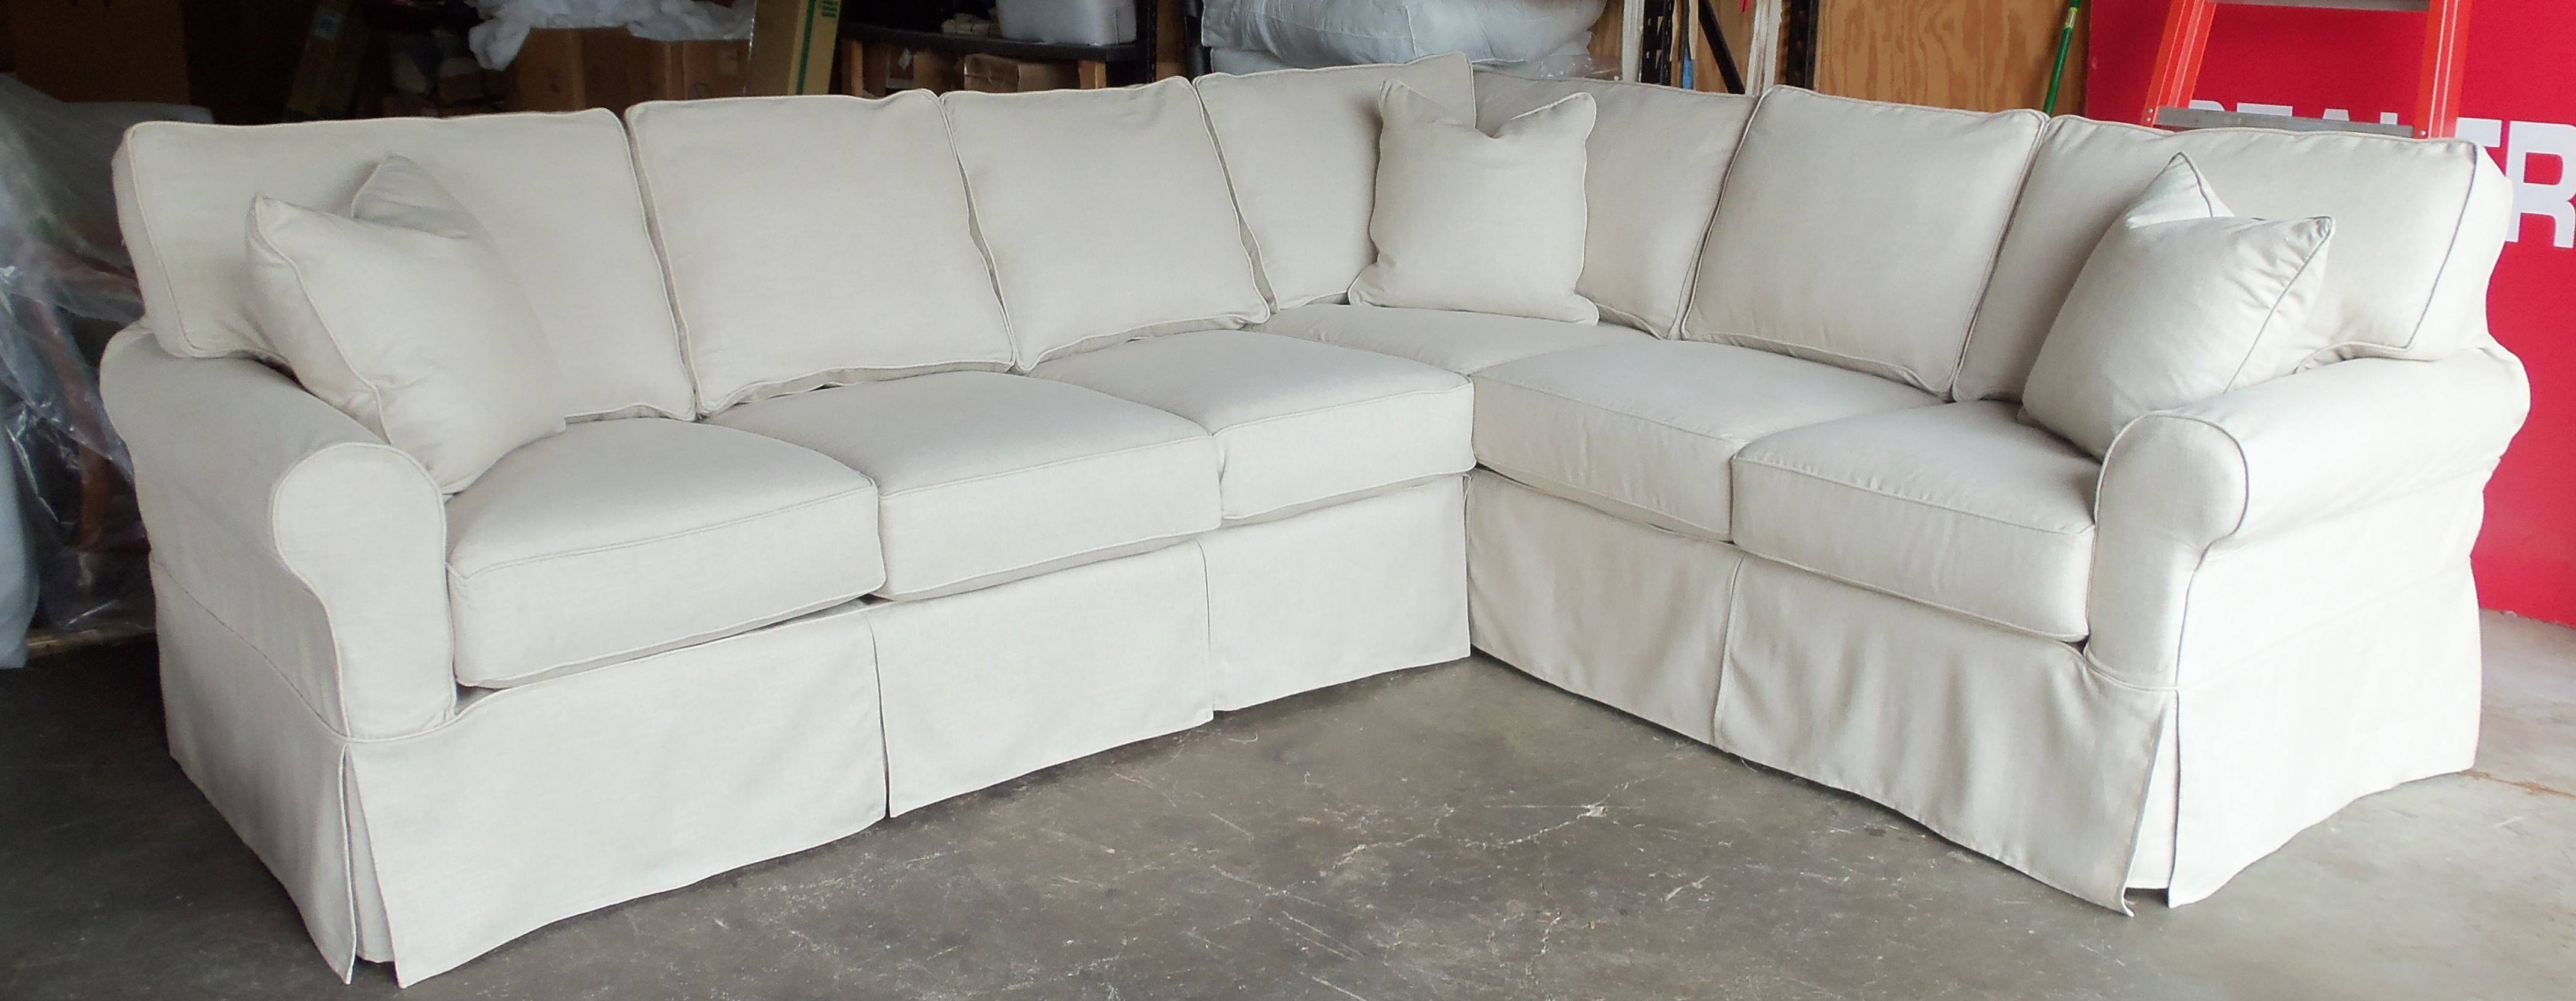 Inspirations: Interesting Furniture Sectional Sofa Slipcovers For pertaining to Sofas Cover For Sectional Sofas (Image 9 of 15)